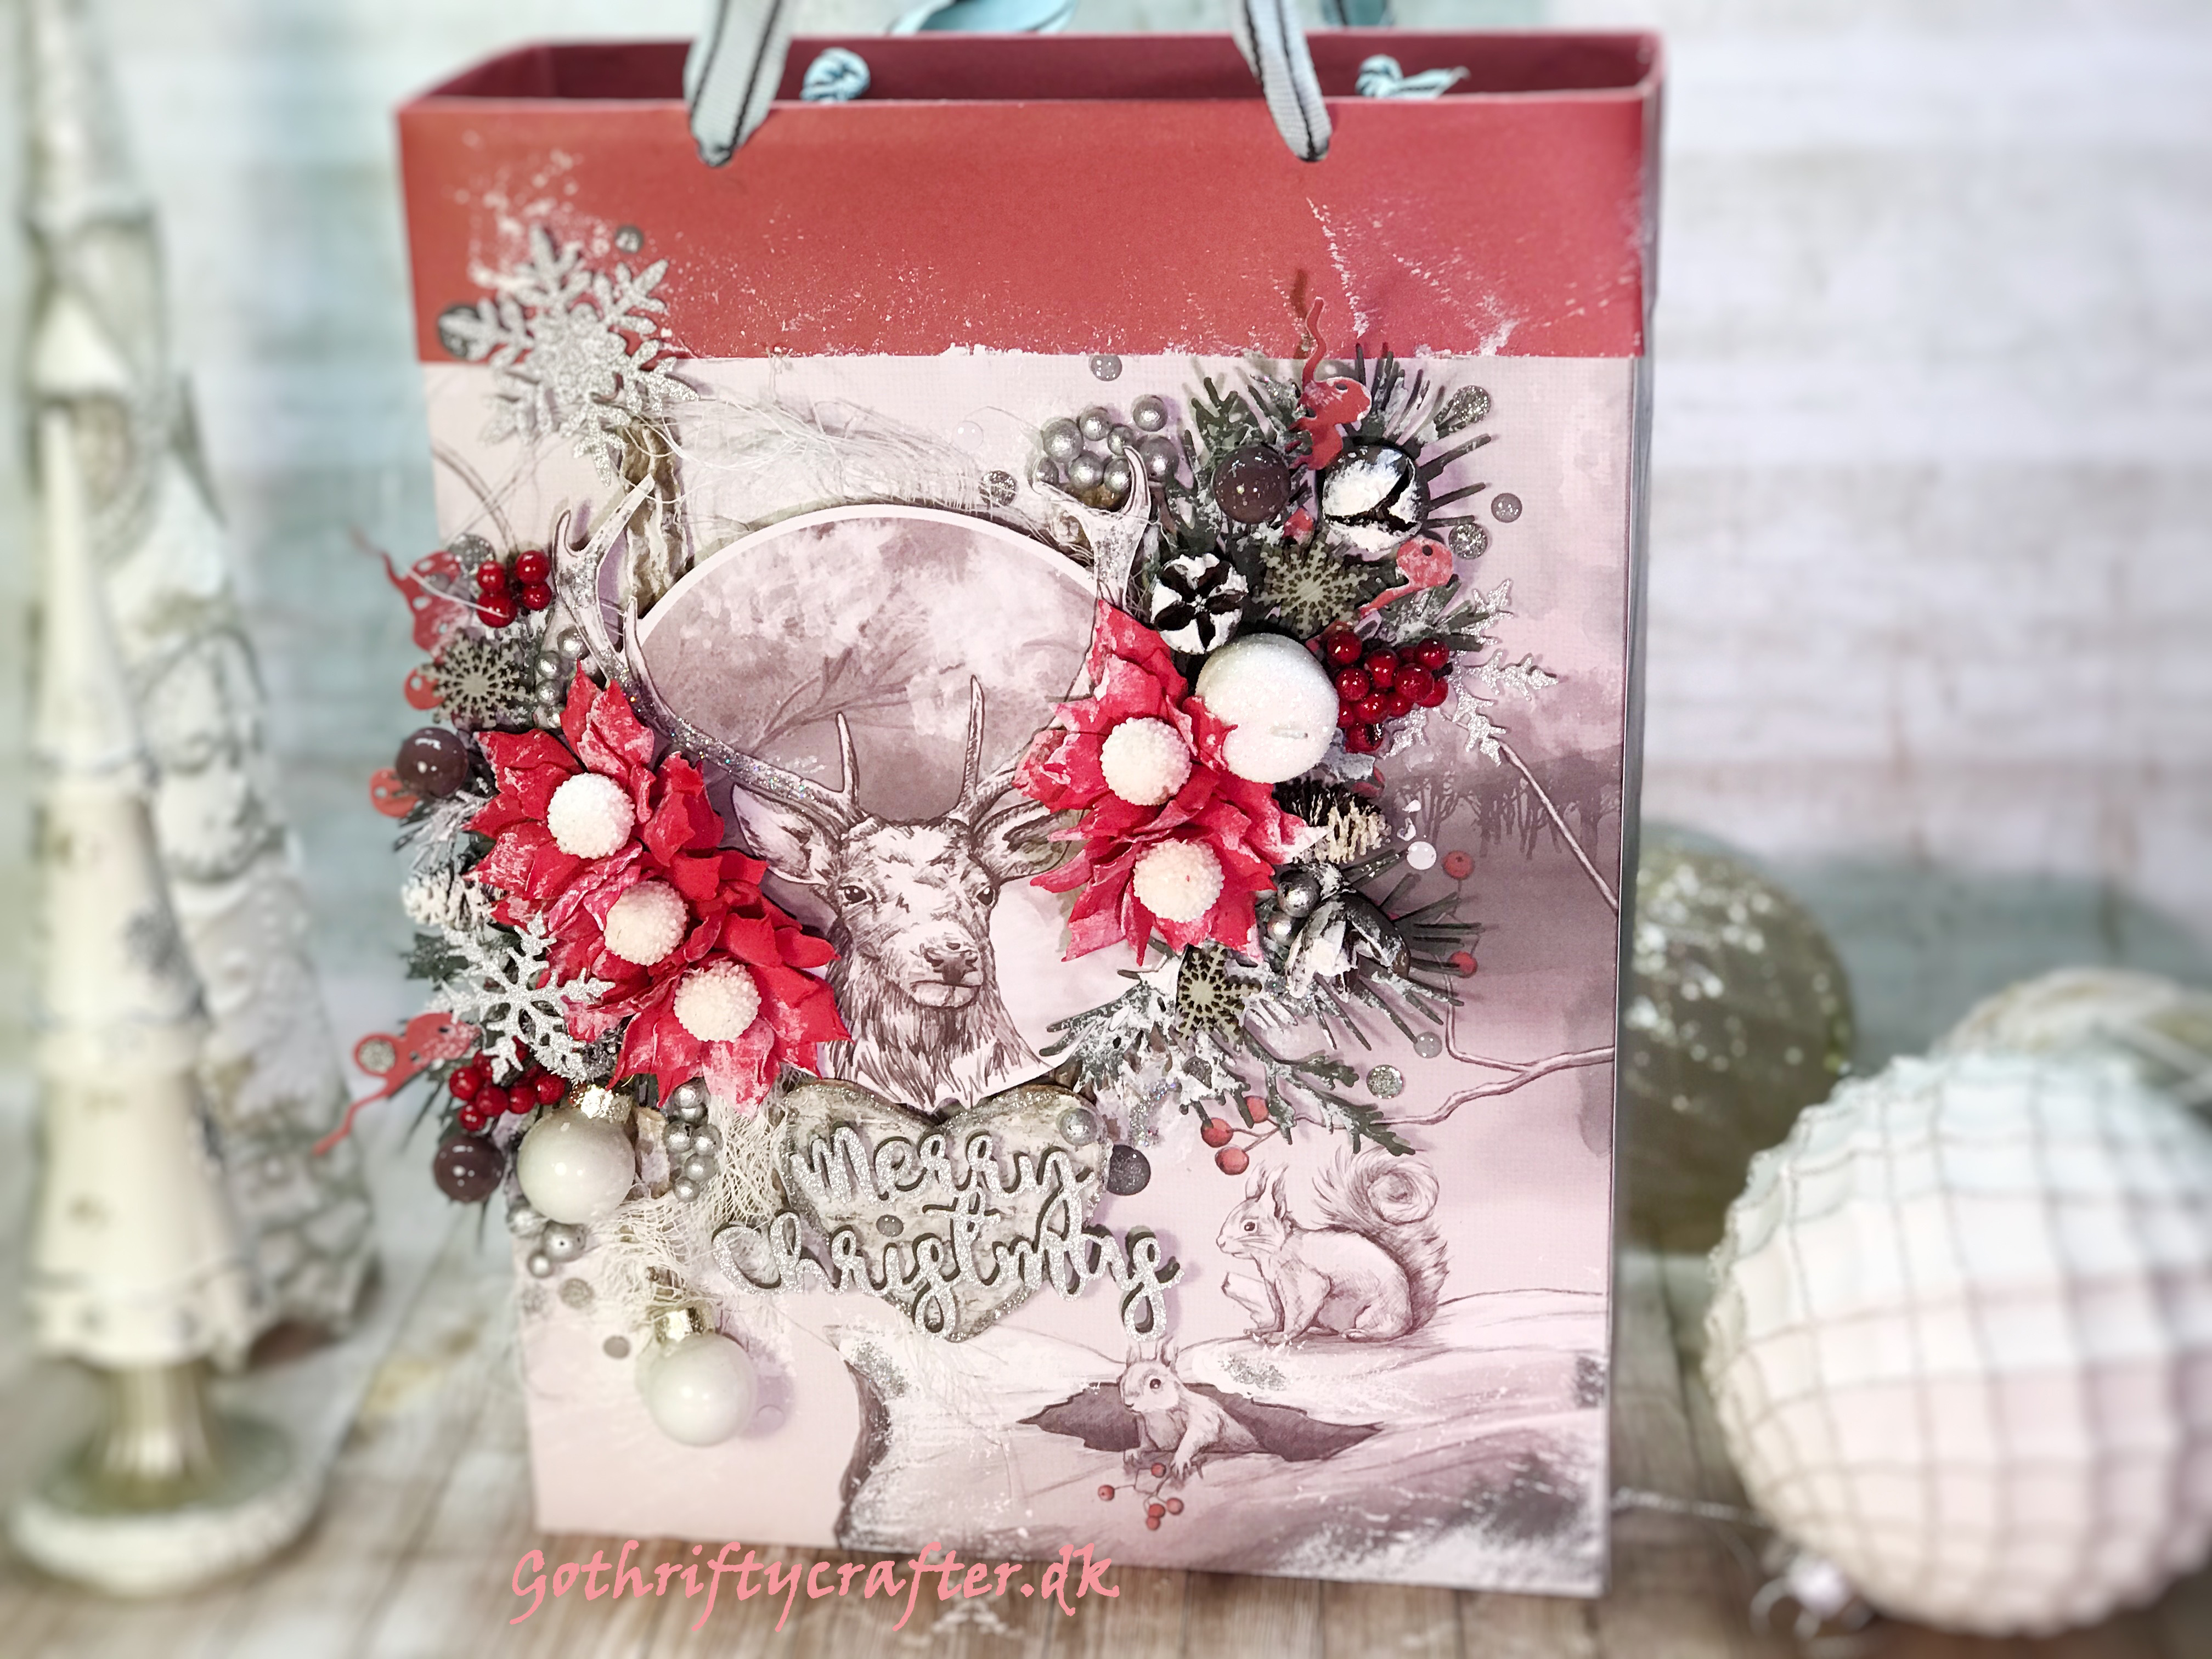 GoThriftycrafter Fabrika Decoru mixed media xmas winter snow gift bag poinsettia deerjpg